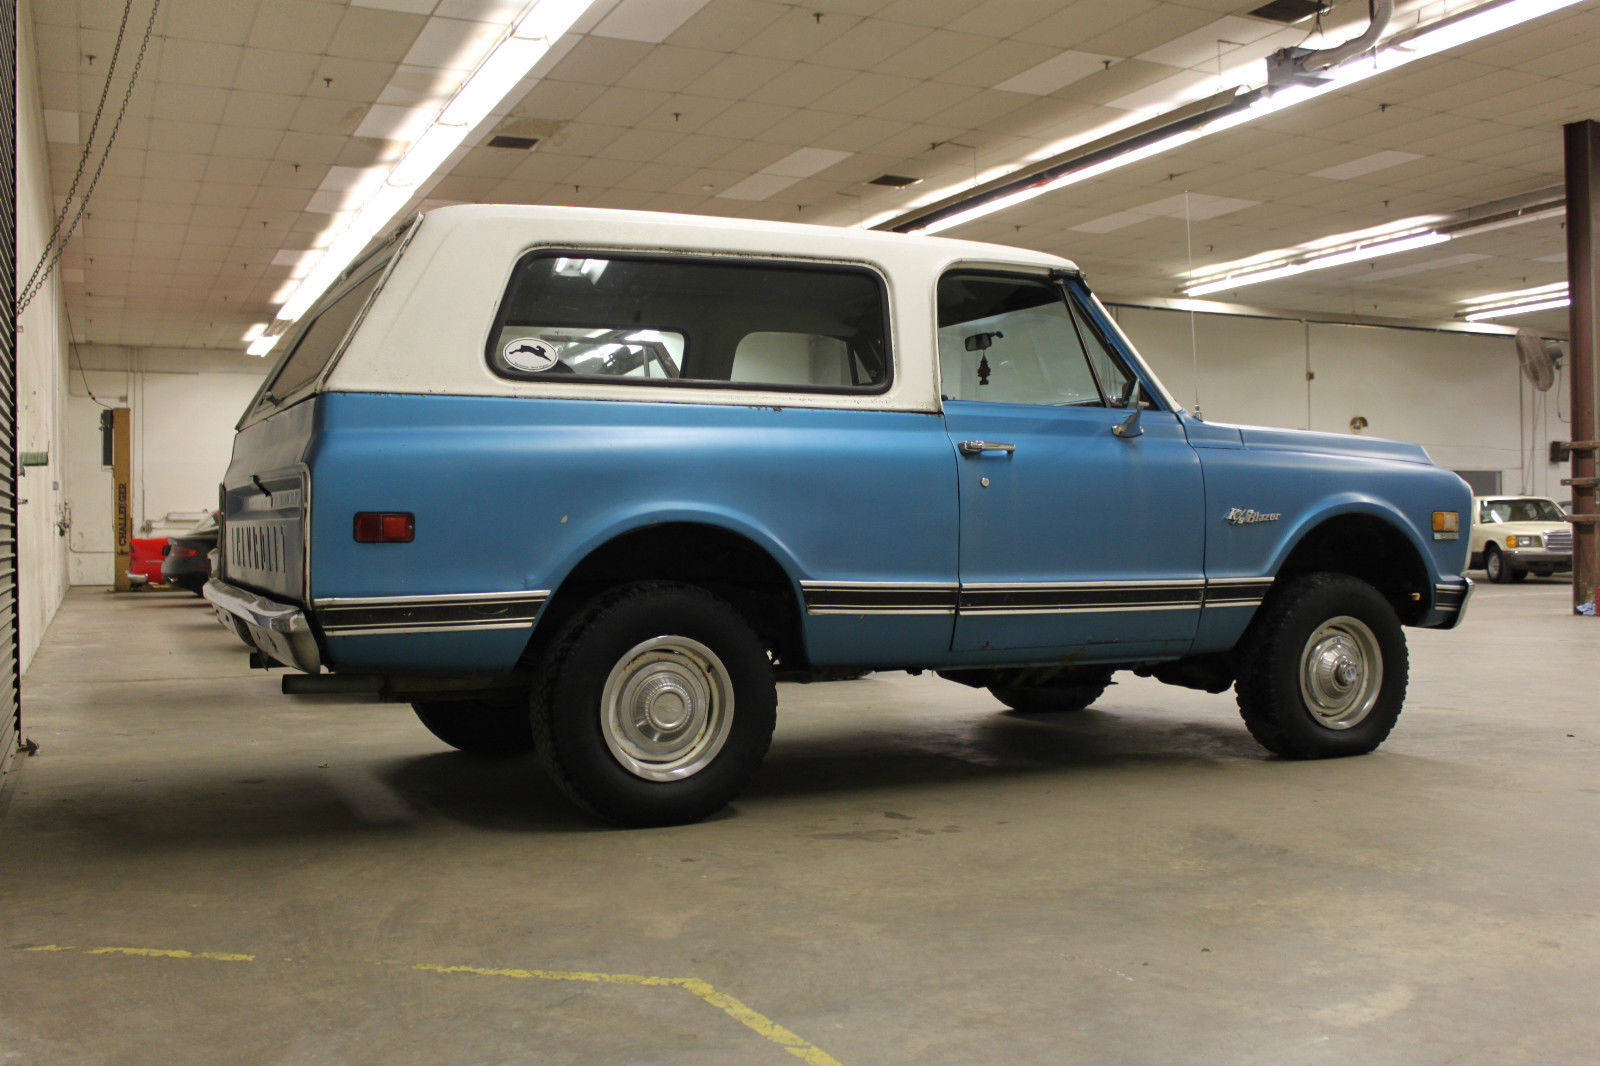 1972 chevy k5 blazer 4x4 4 speed manual trans 350ci classic chevrolet blazer 1972. Black Bedroom Furniture Sets. Home Design Ideas